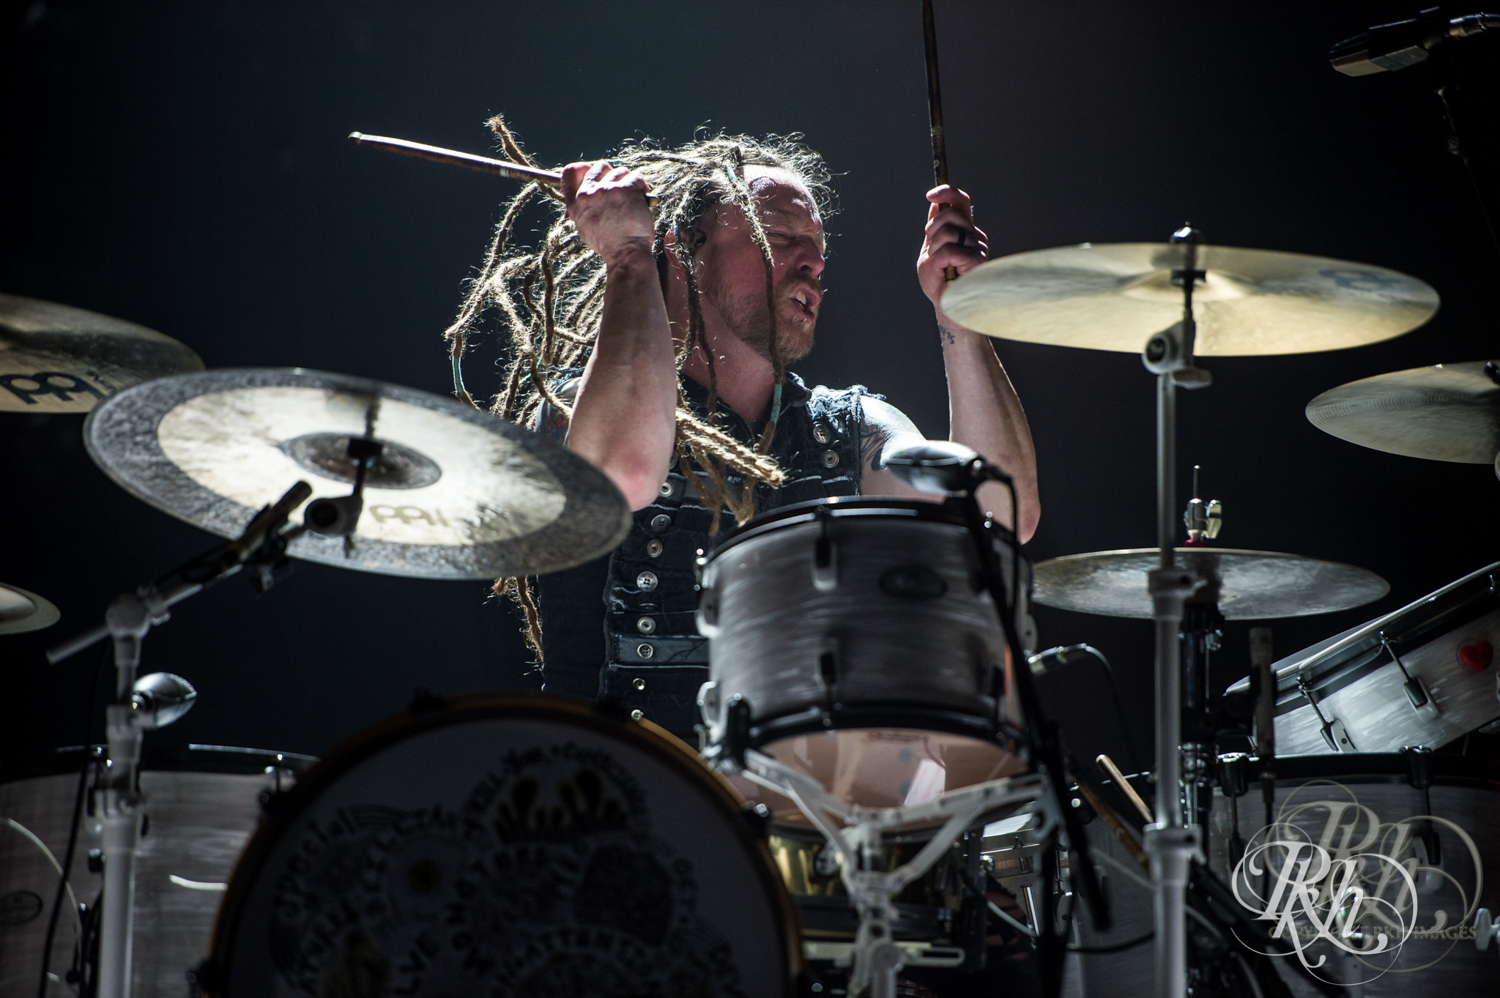 Shinedown - Minnesota Concert Photography - Target Center - Minneapolis - RKH Images (18 of 19).jpg